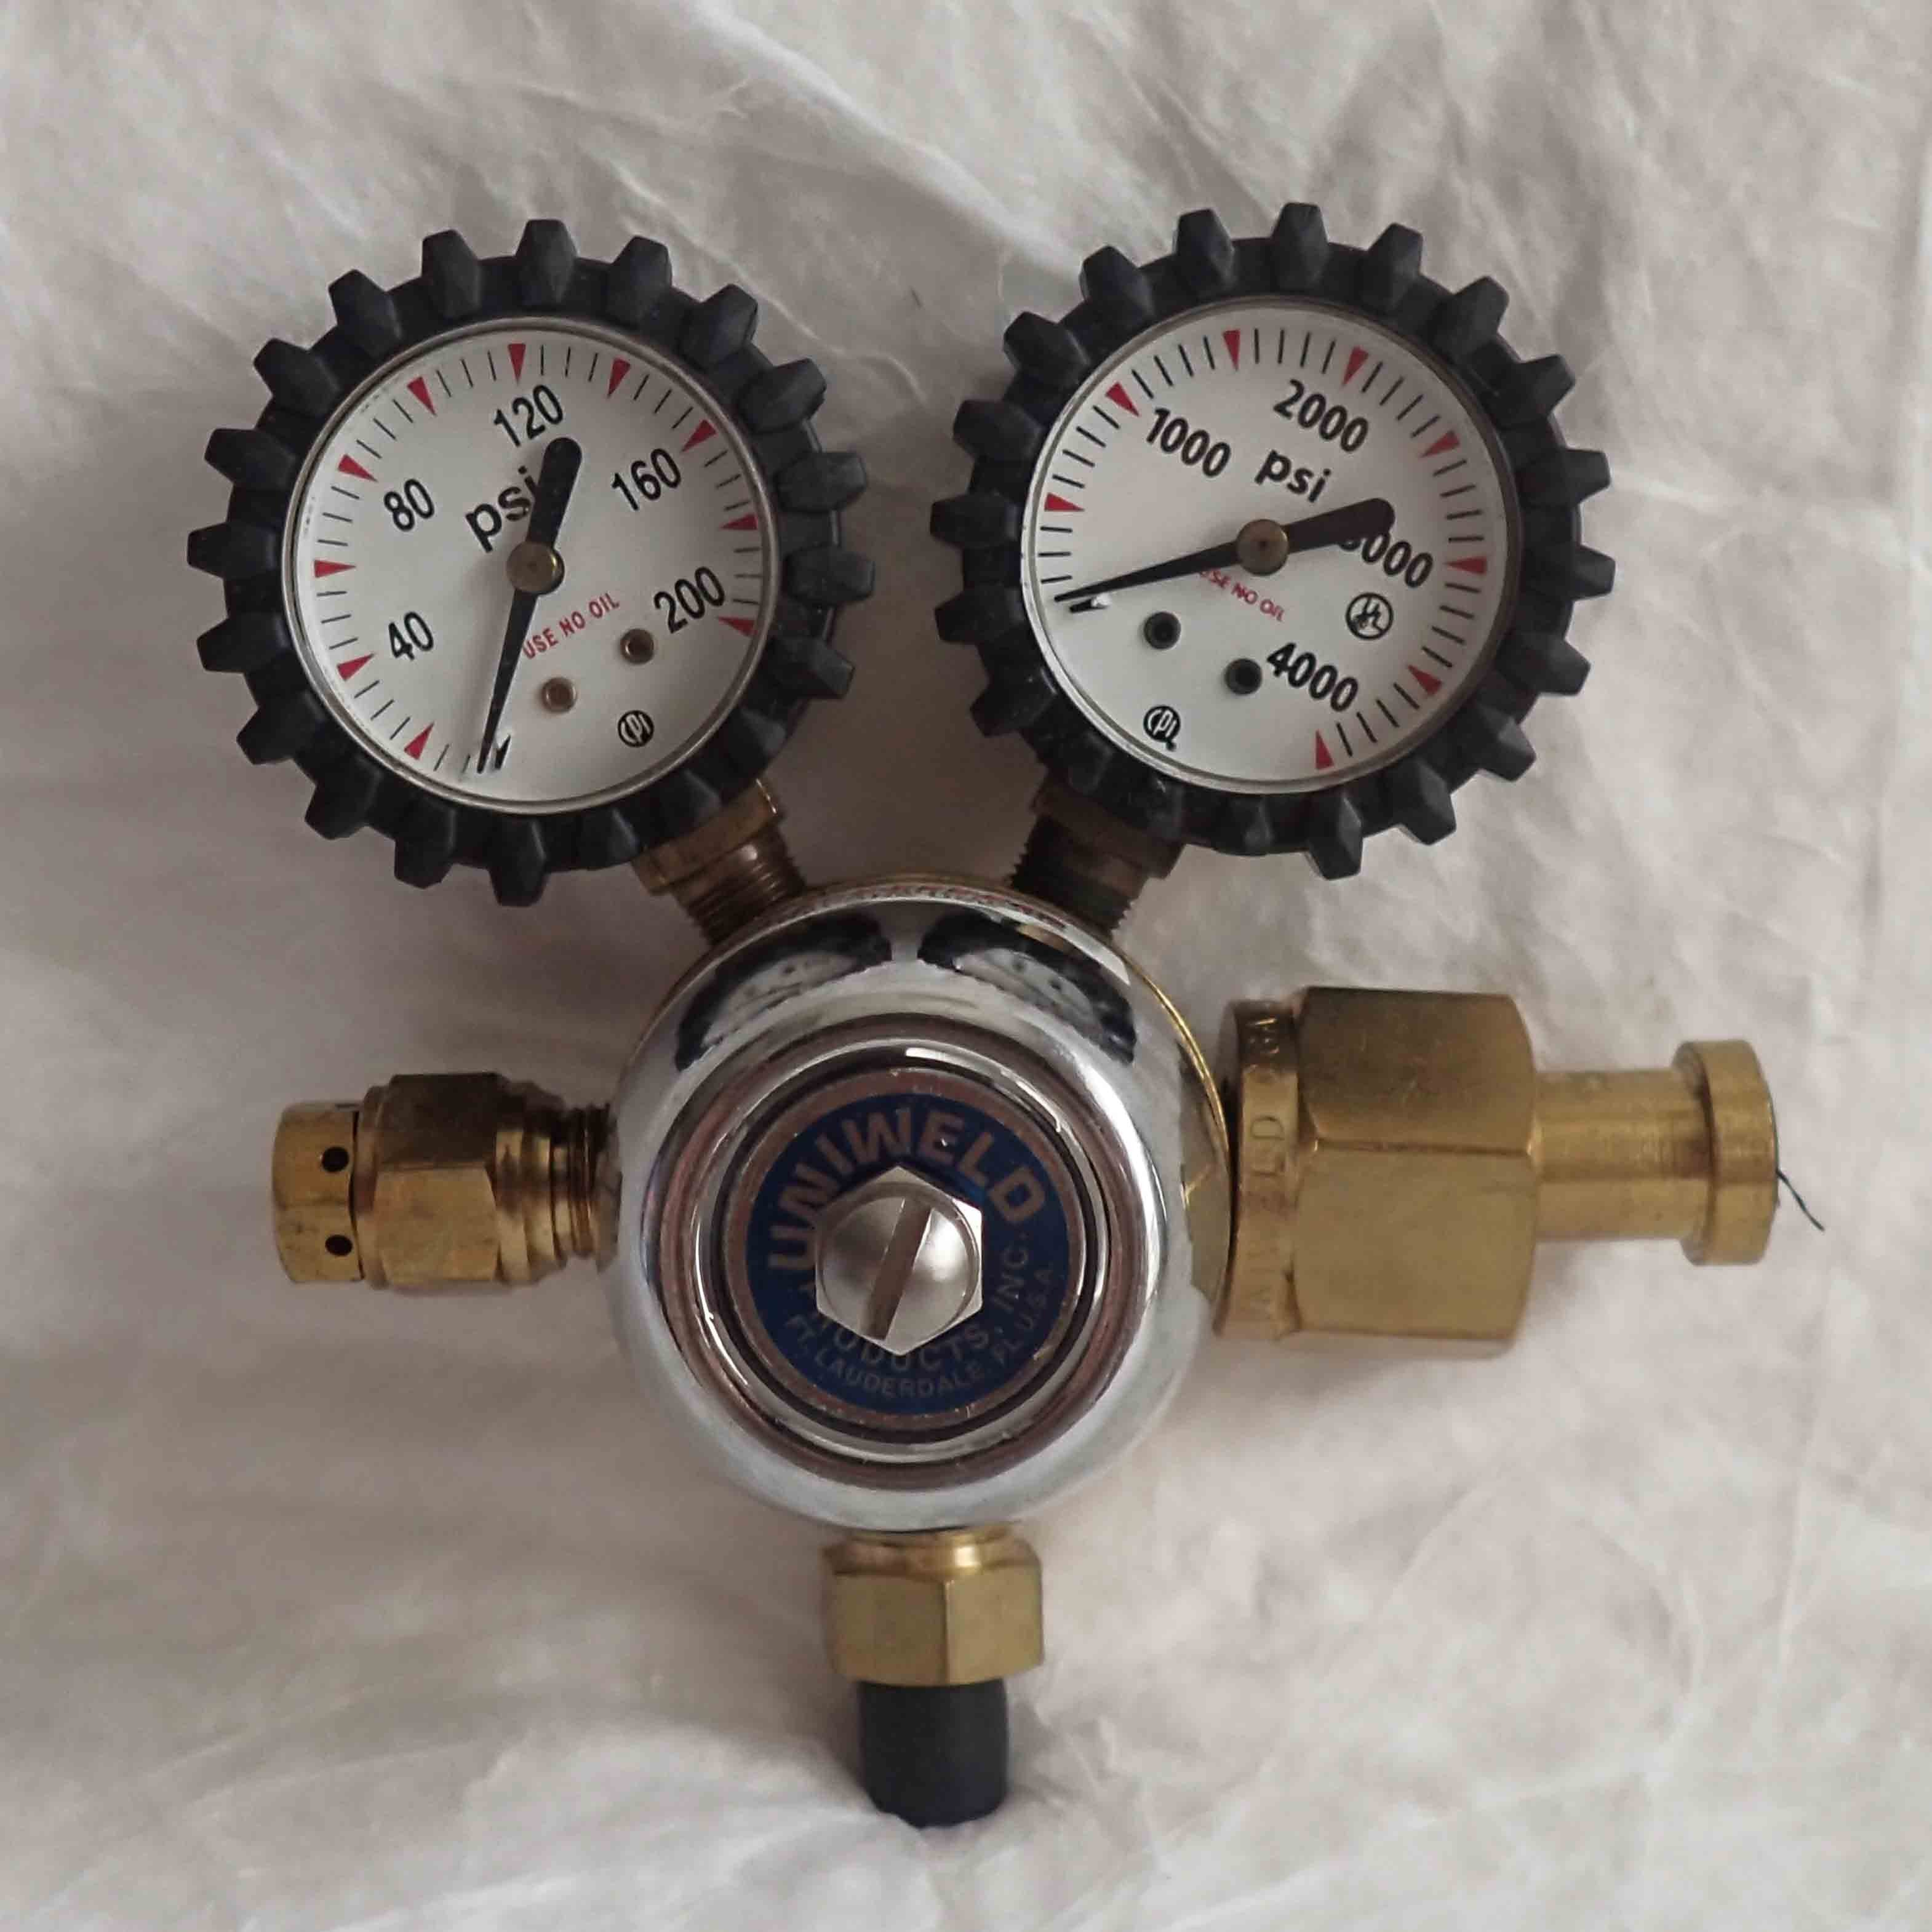 Uniweld Regulator - CO2